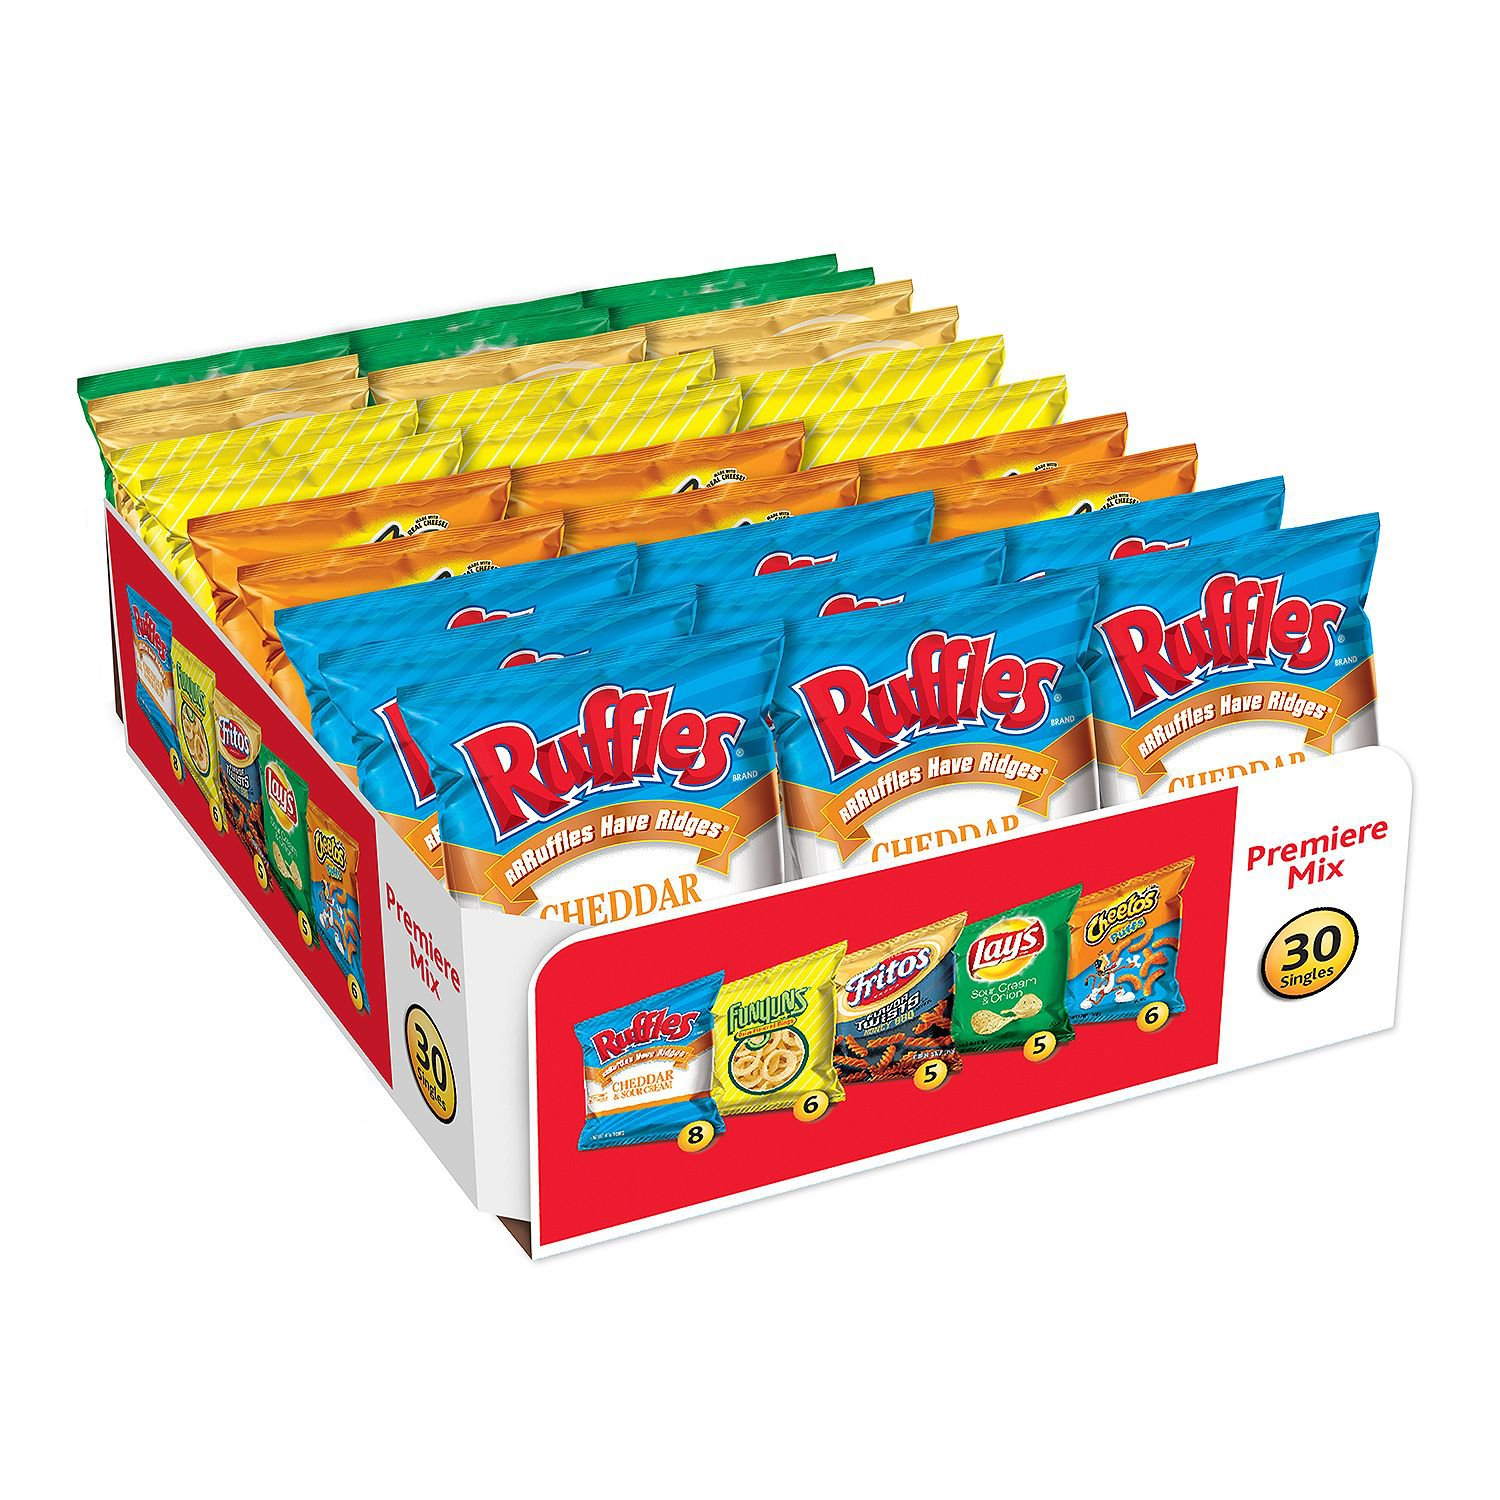 Frito-Lay Premiere Mix Chips and Snacks Variety Pack (30 ct.)